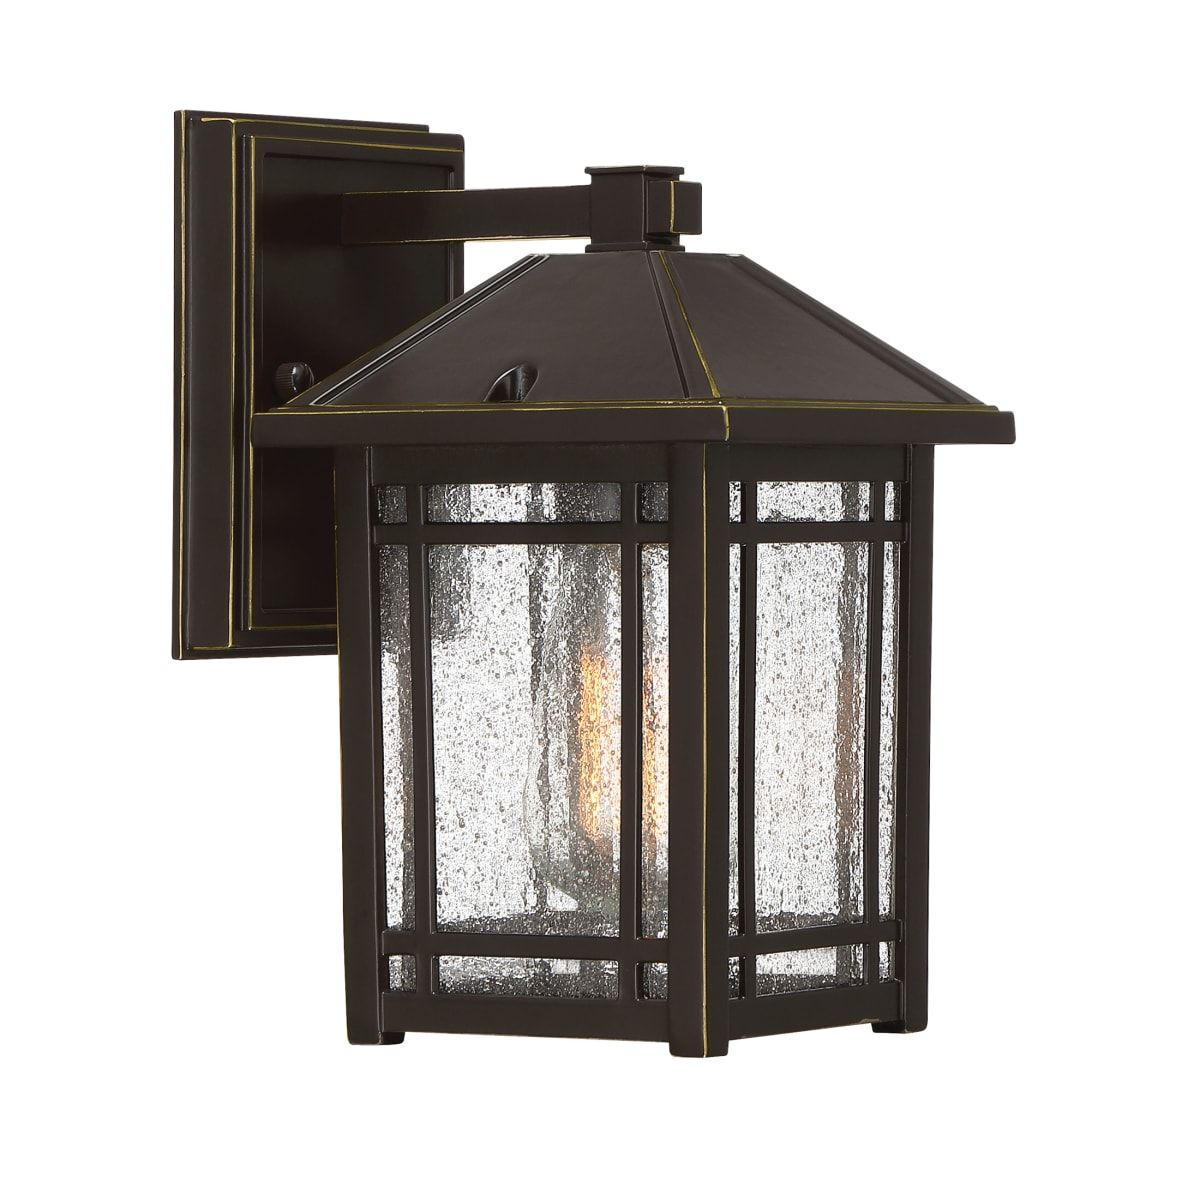 Quoizel Cpt8406 In 2020 Outdoor Wall Lighting Outdoor Wall Sconce Outdoor Walls